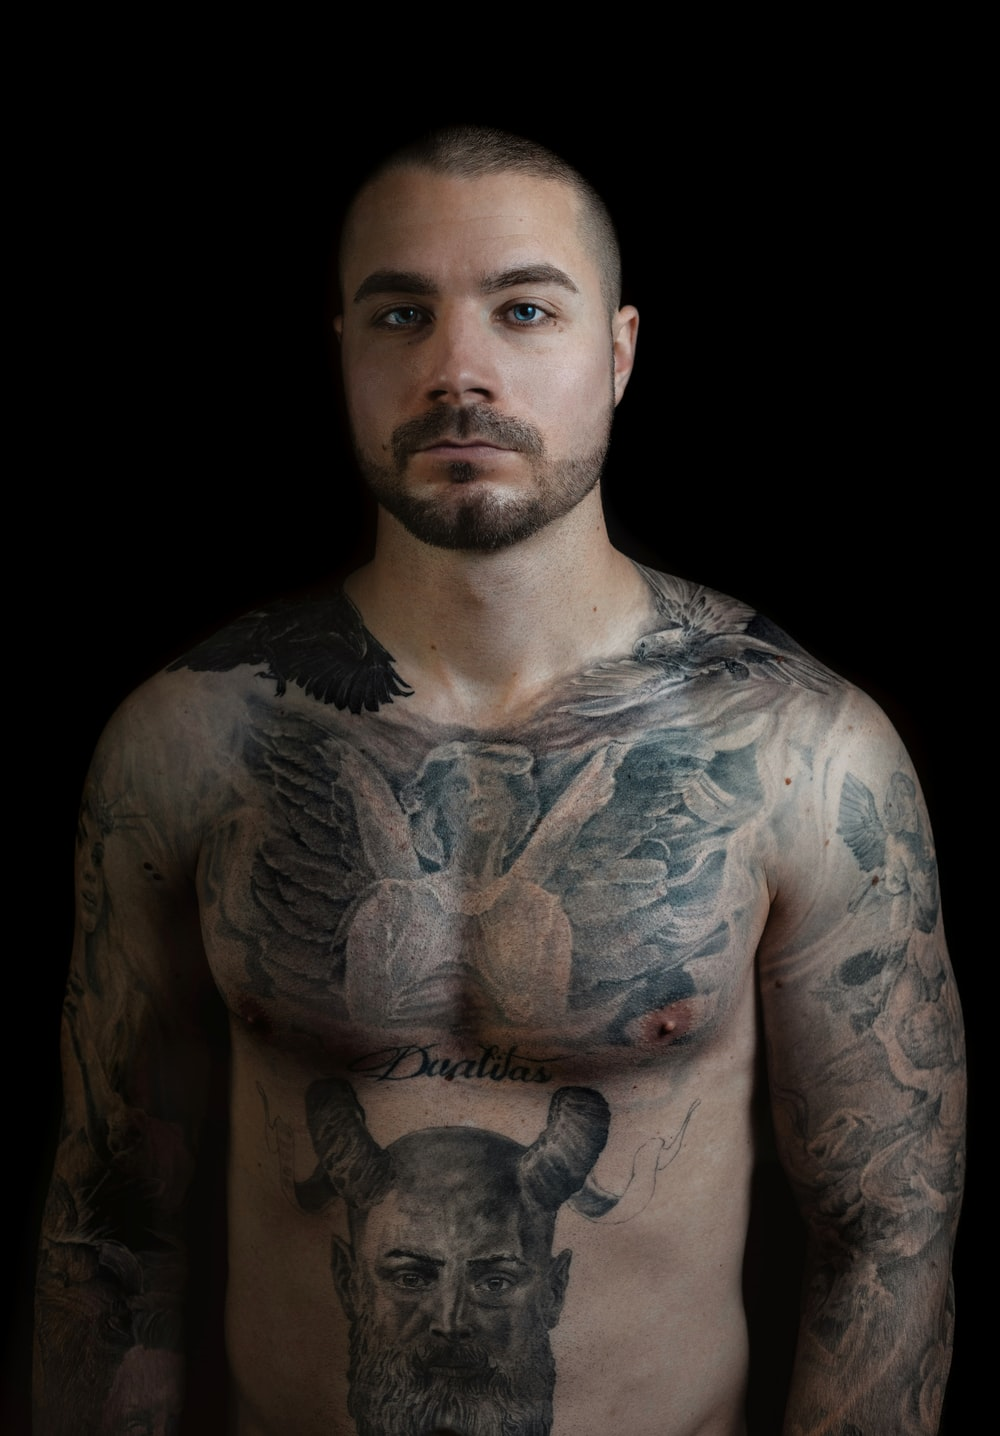 man with black and white body tattoo